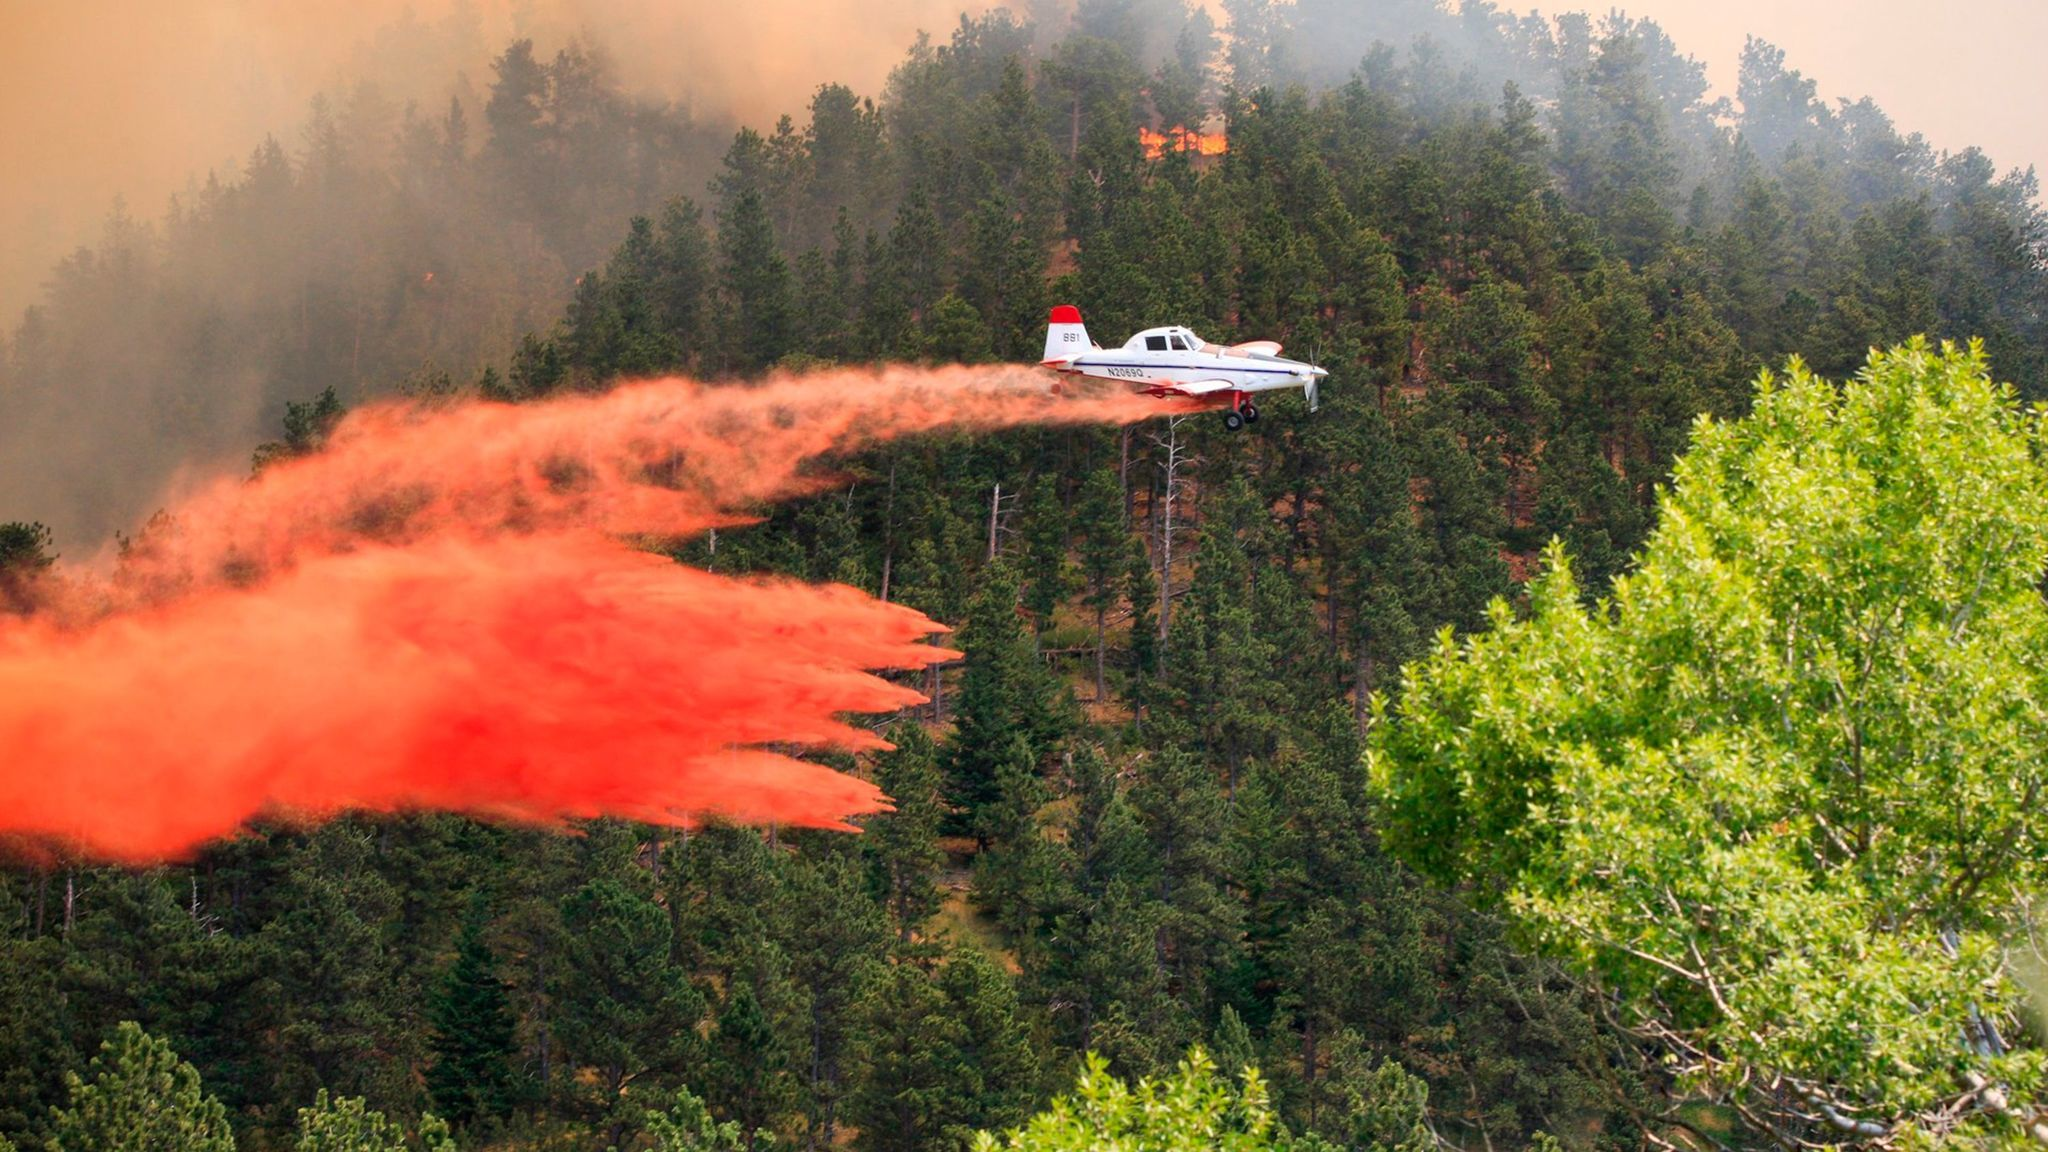 A plane drops retardant on a wildfire near the historic mining town of Landusky, south of the Fort Belknap Indian Reservation in north-central Montana.